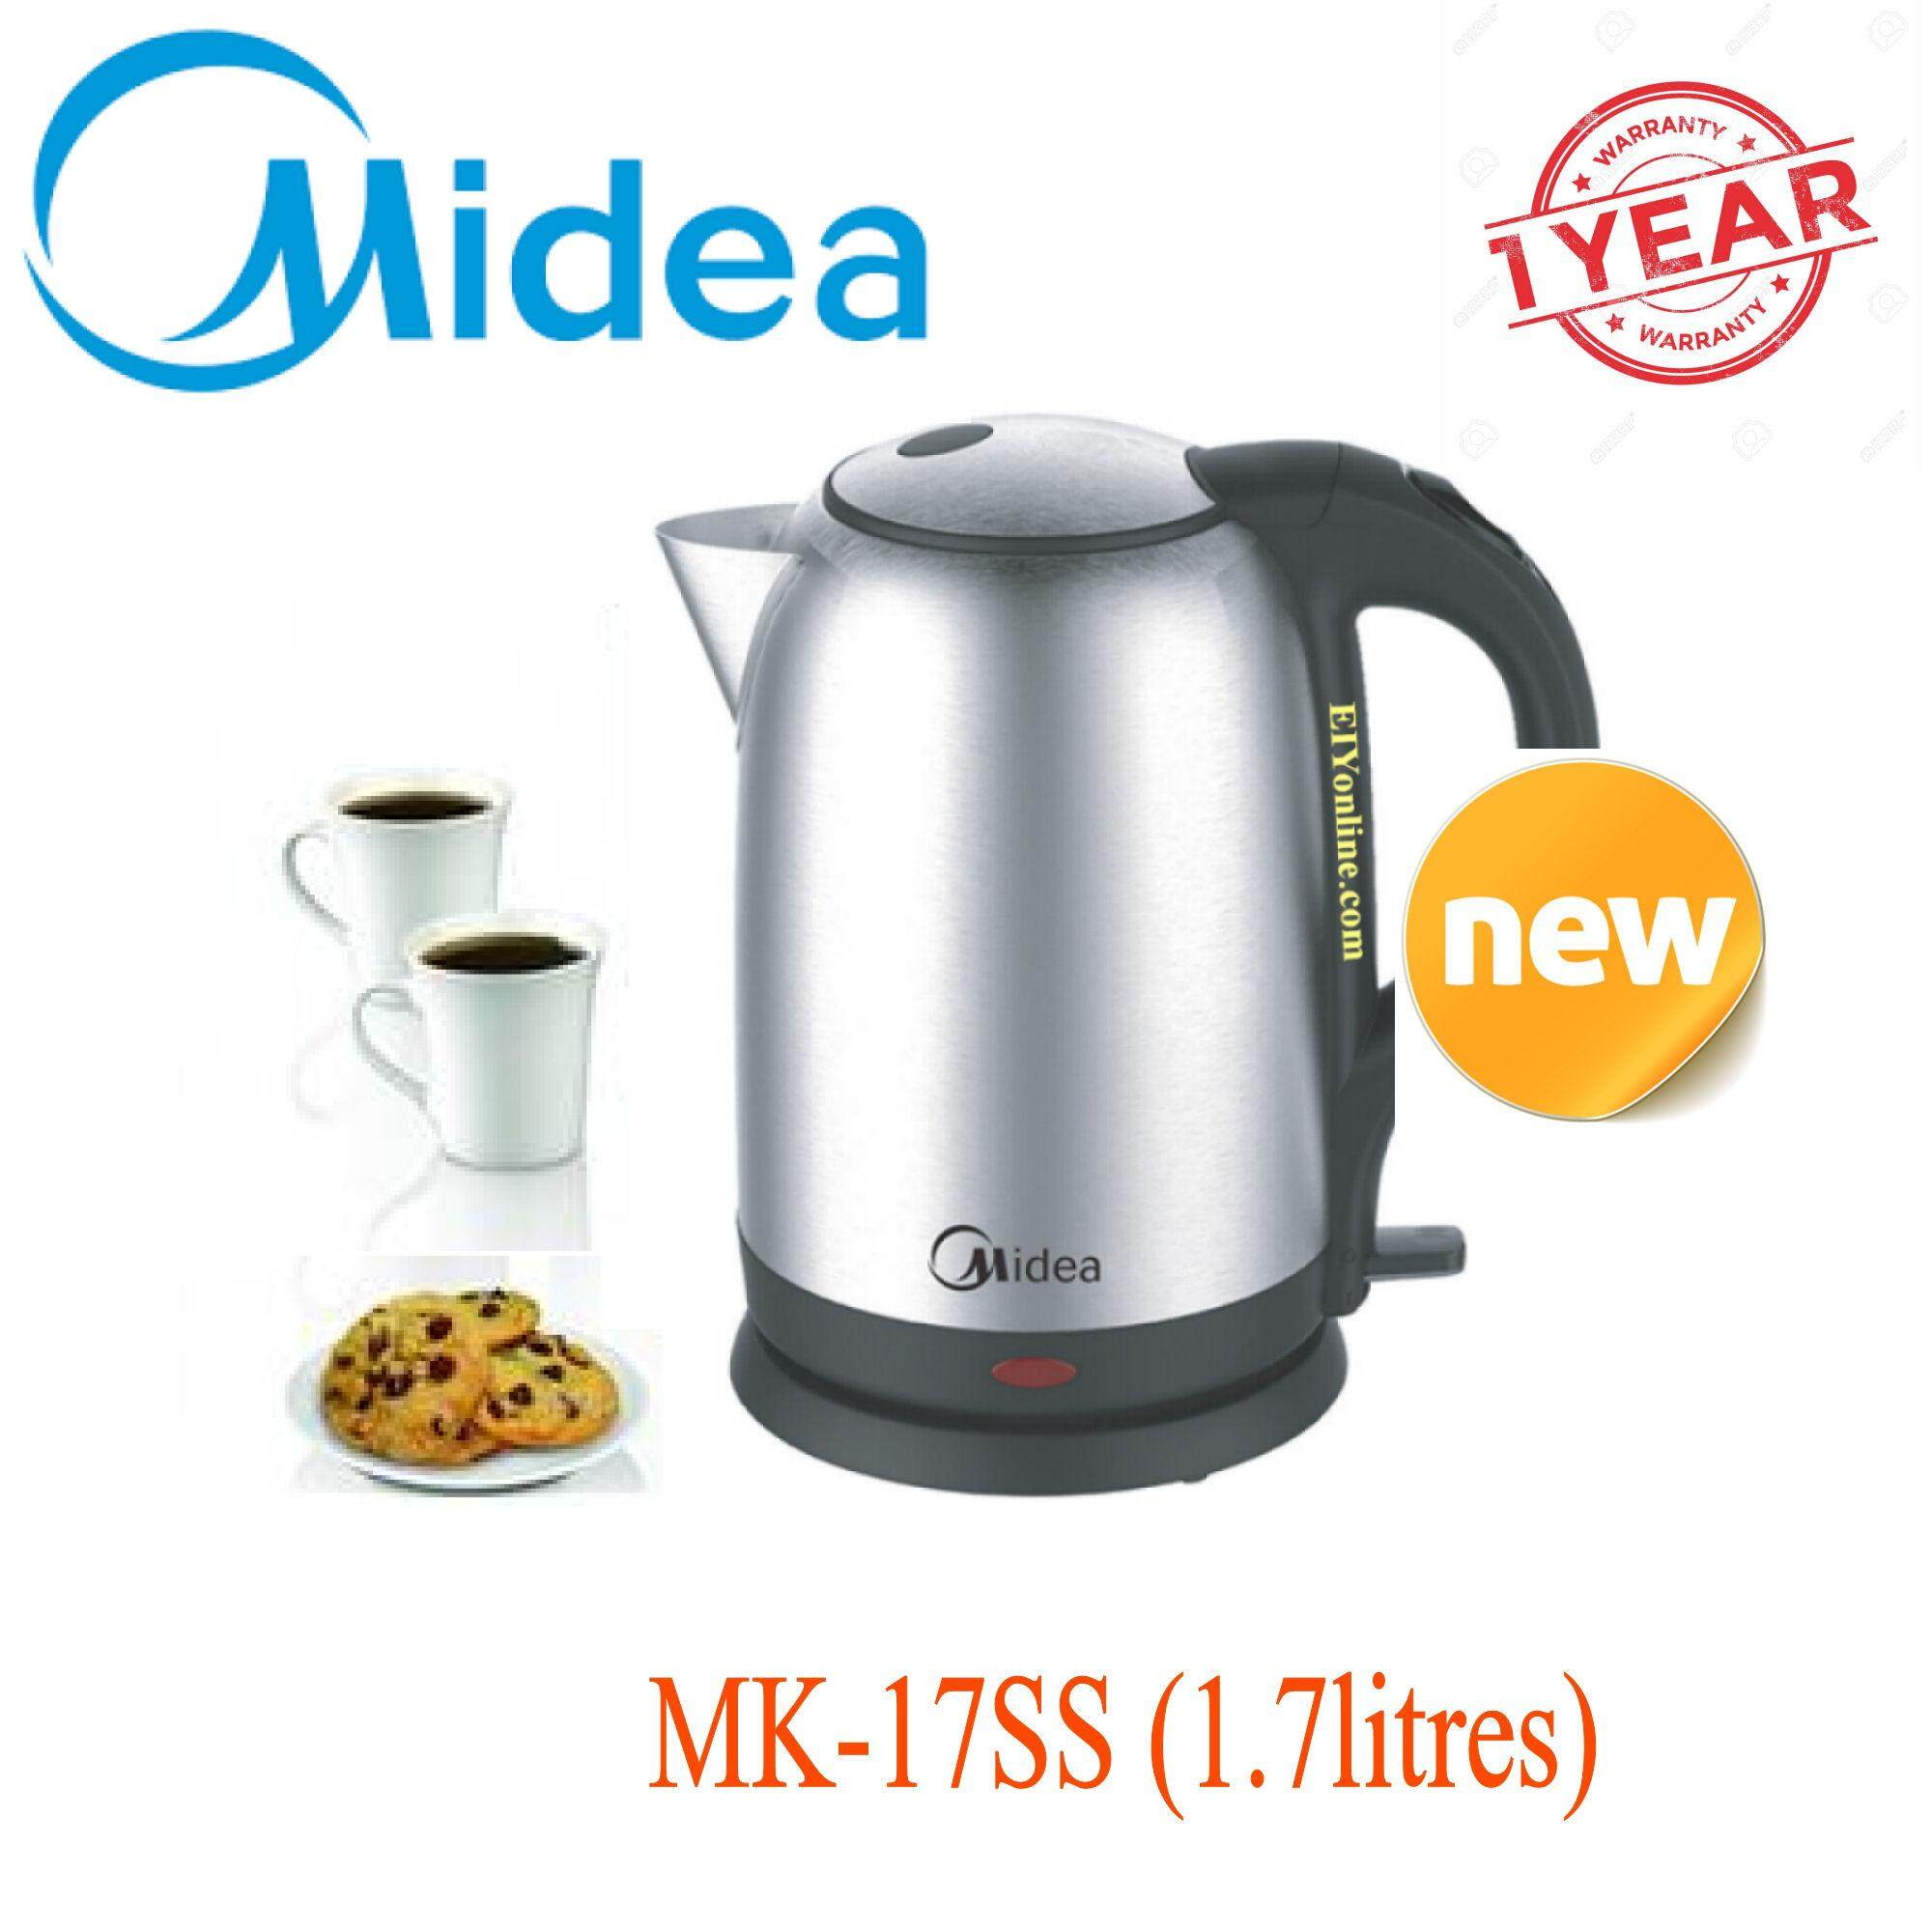 Midea Stainless Steel Electric Jug Kettle Mk-17ss (1.7l)_2311001 By Ediyonline.com.my.